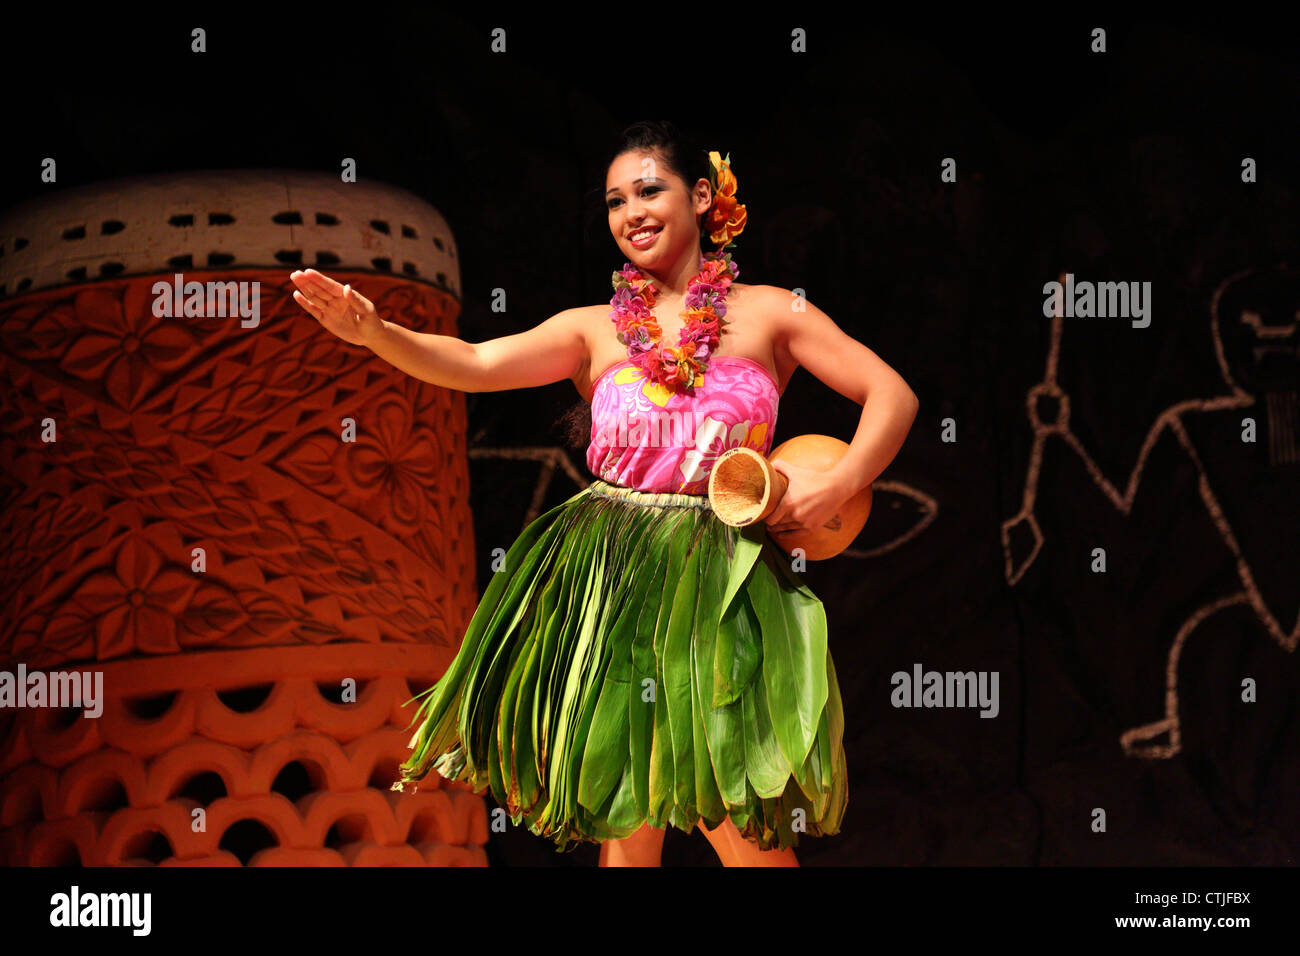 Hula dancer at Hawaiian Luau Stock Photo